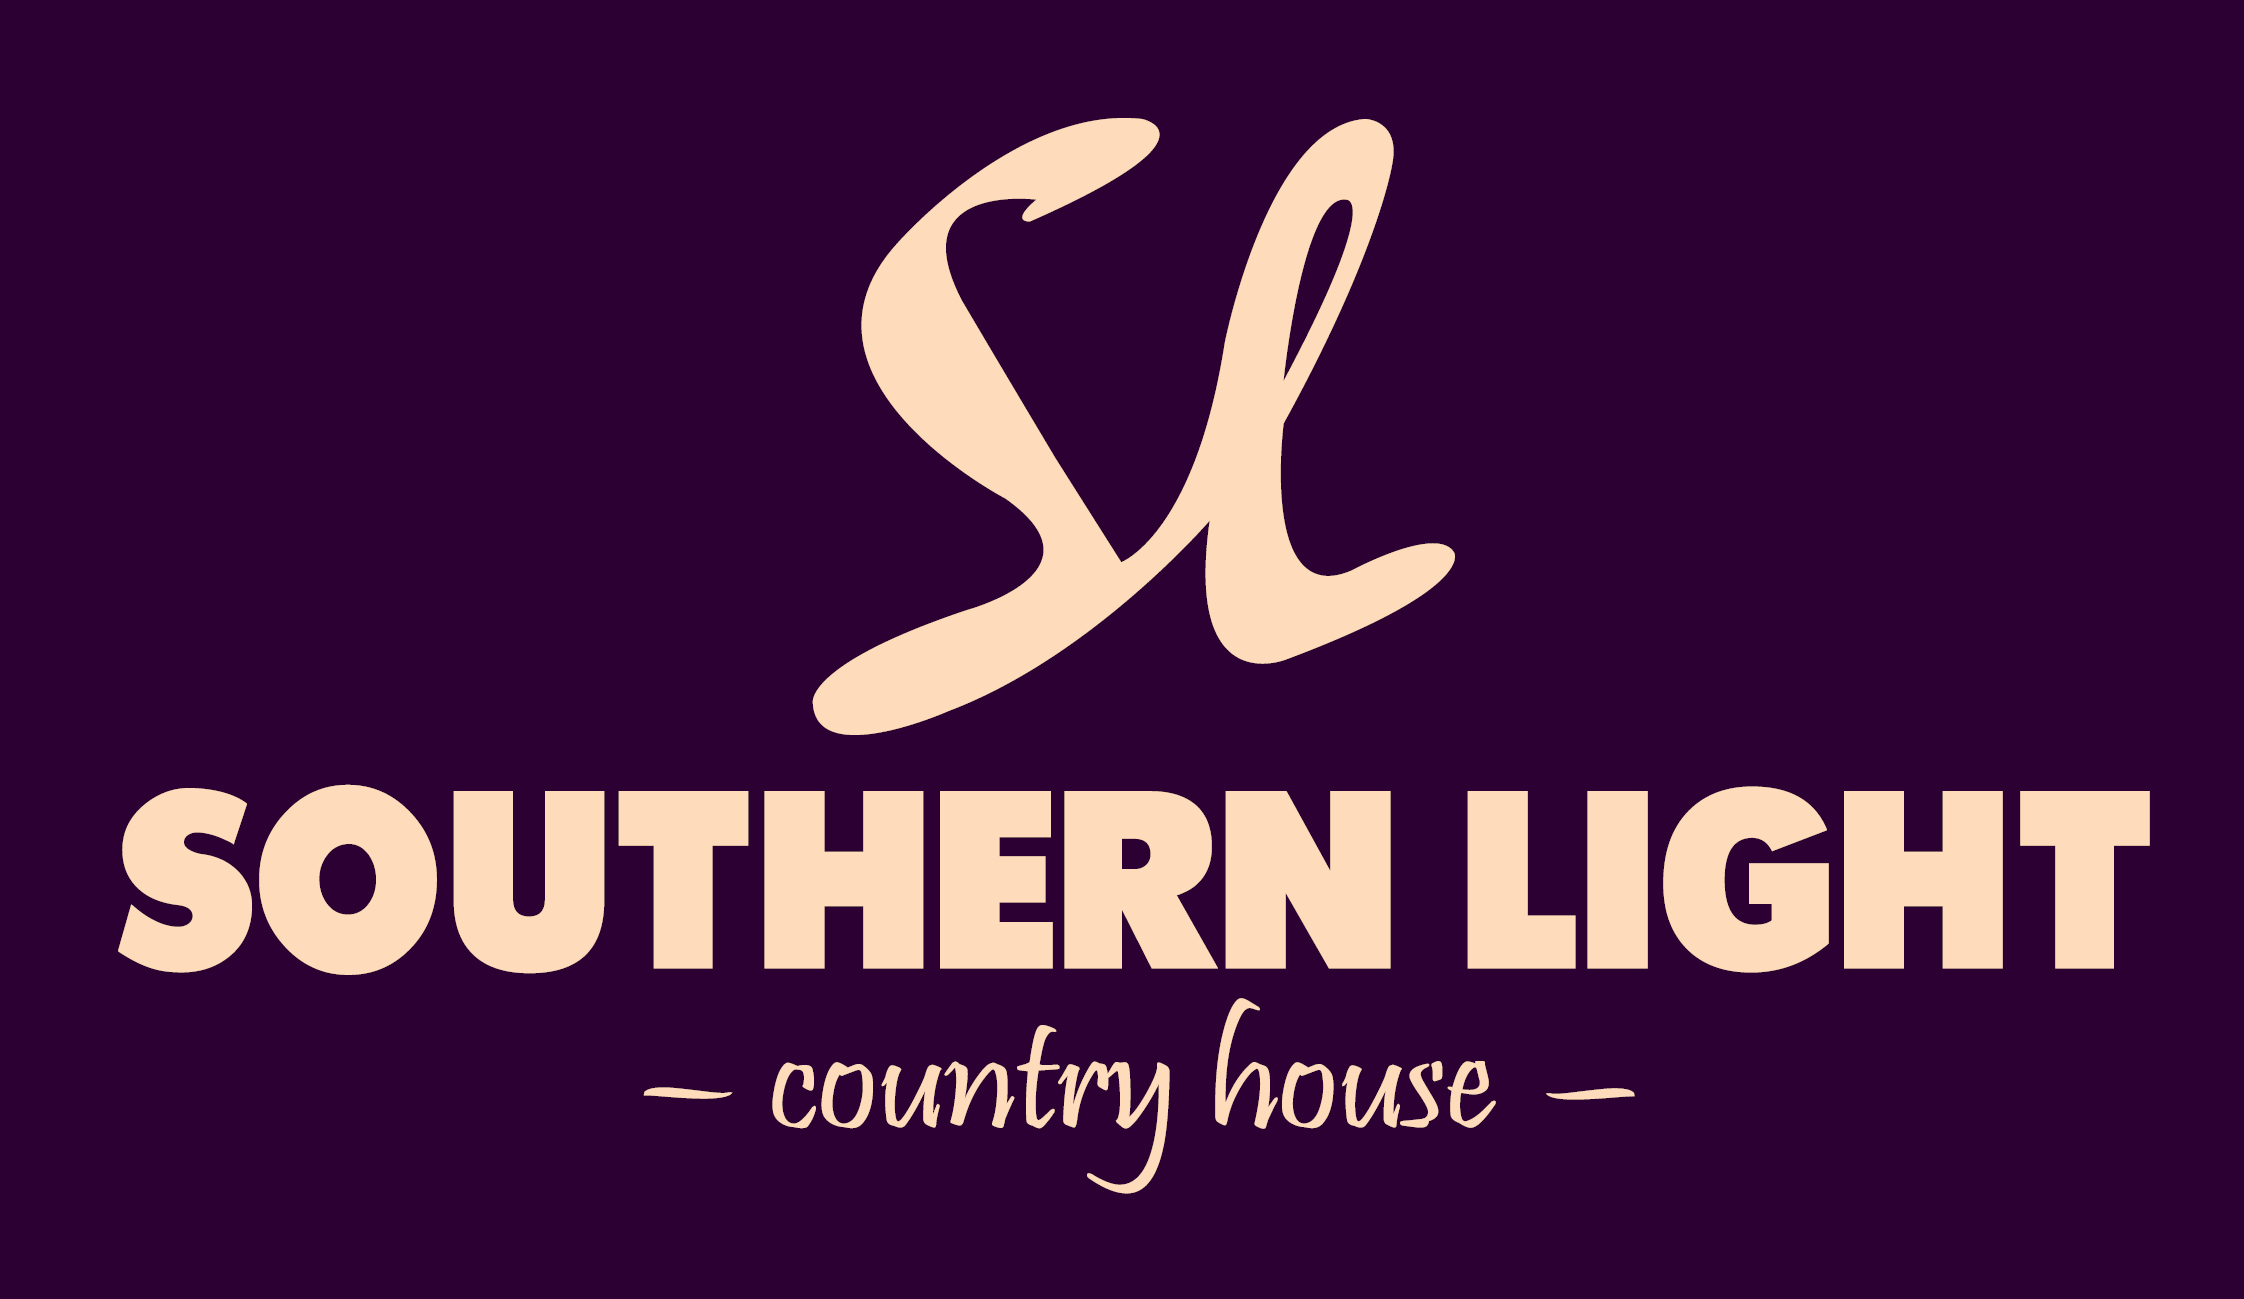 Southern Light Country House